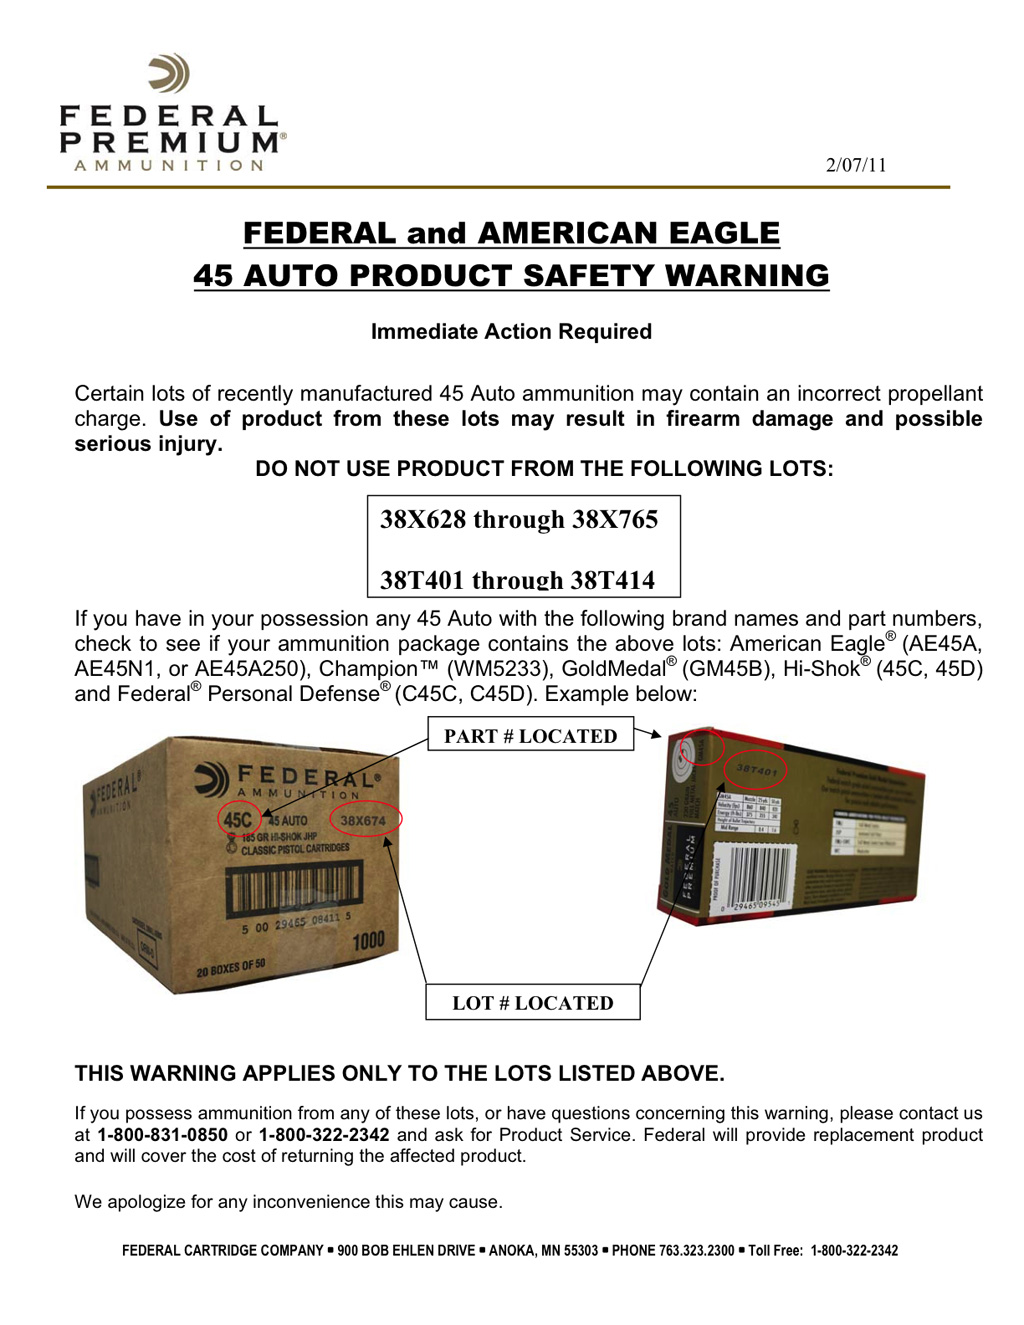 Federal and American Eagle .45 Auto Safety Warning and Ammunition Recall